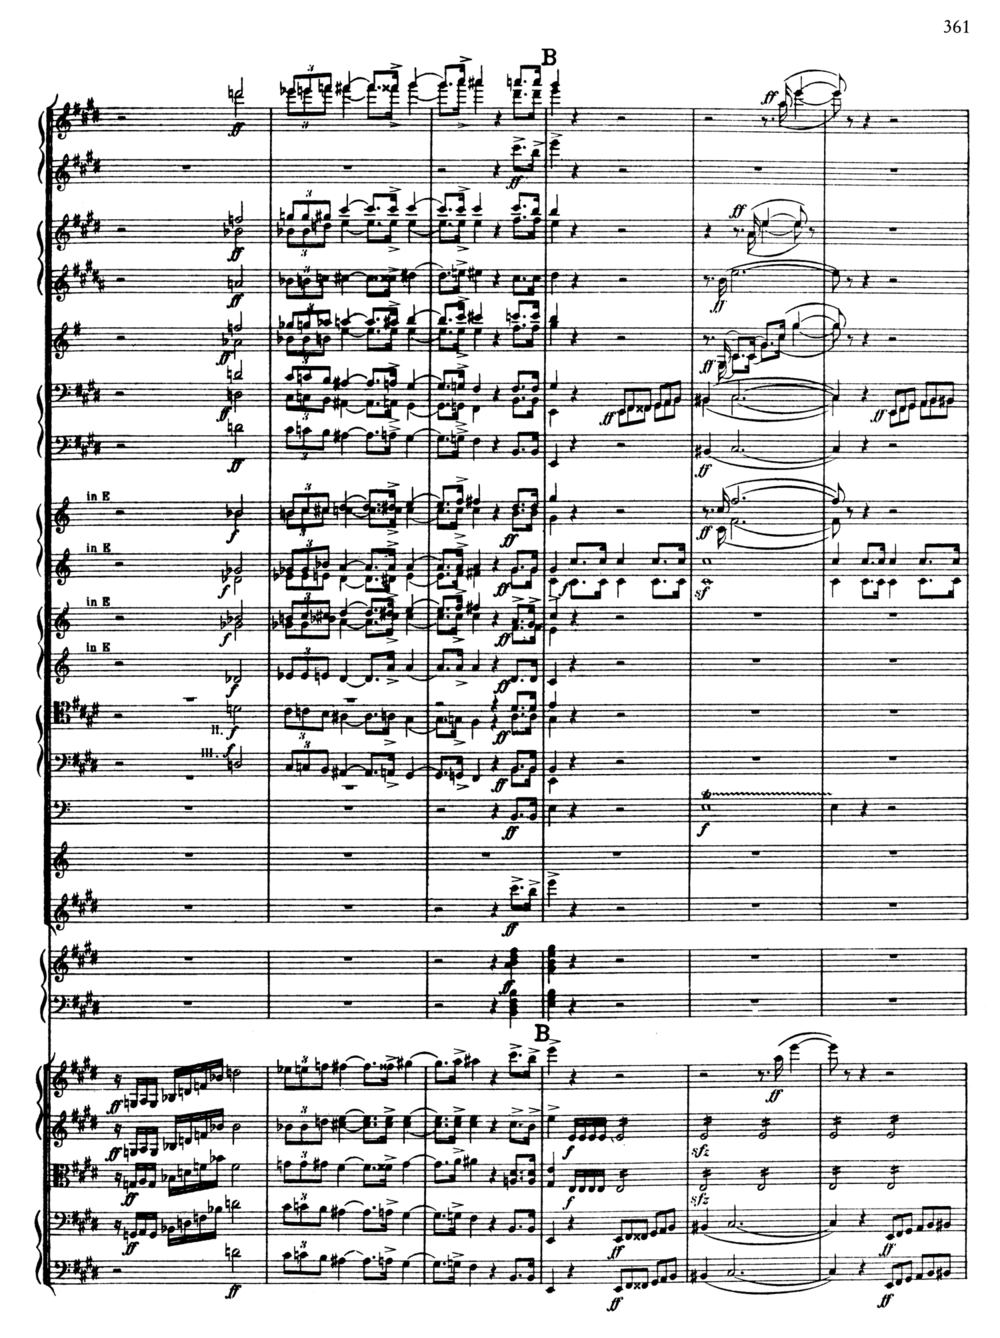 Strauss Don Juan Score 4.jpg